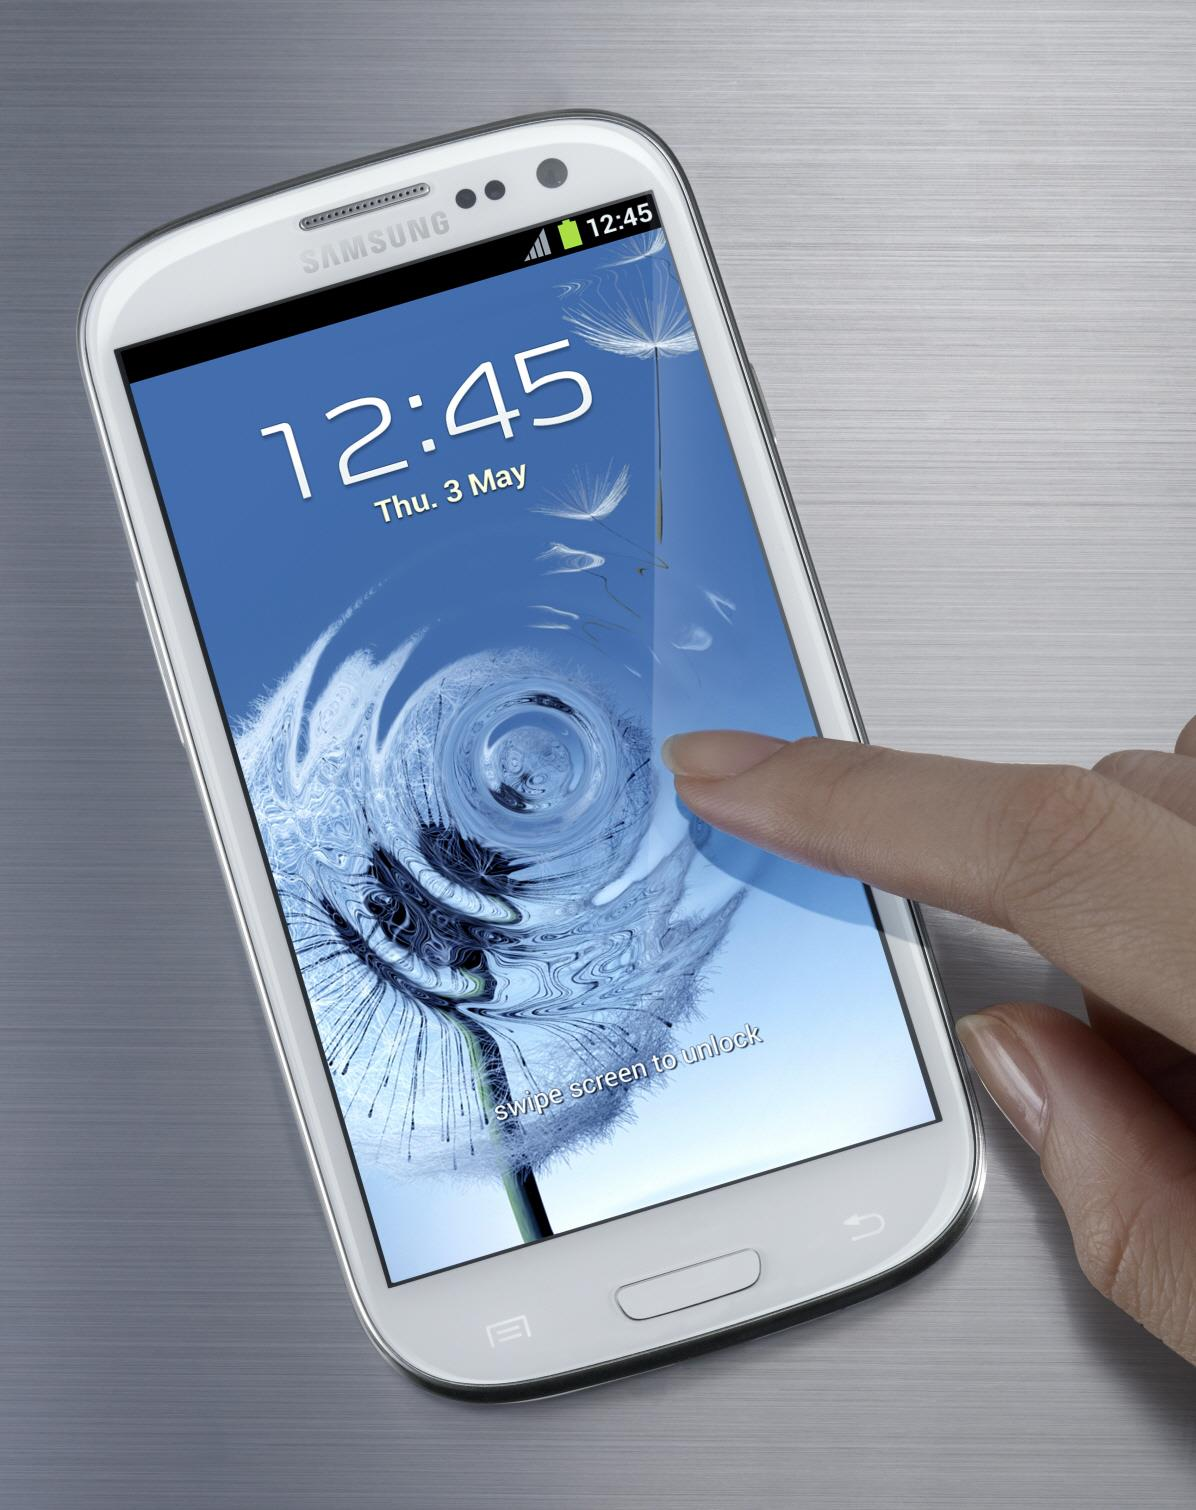 Samsung Galaxy S3 – Effortlessly smart? Maybe?